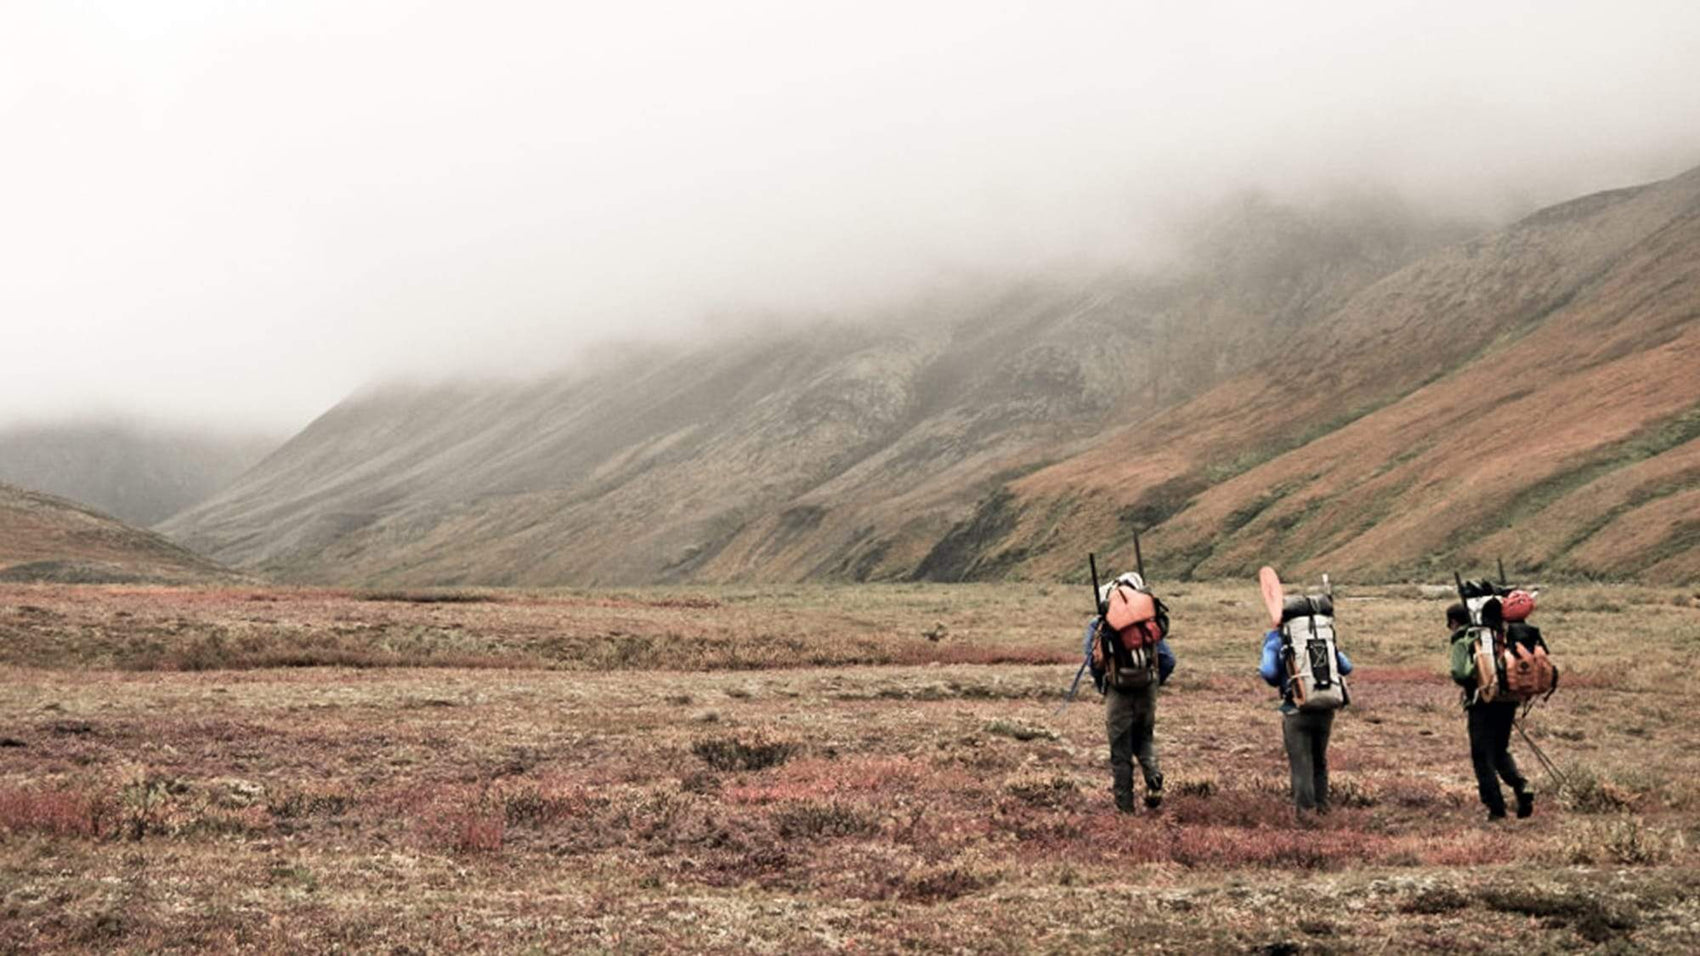 Leave No Trace Principles in Alaska's Arctic Wildlife Refuge